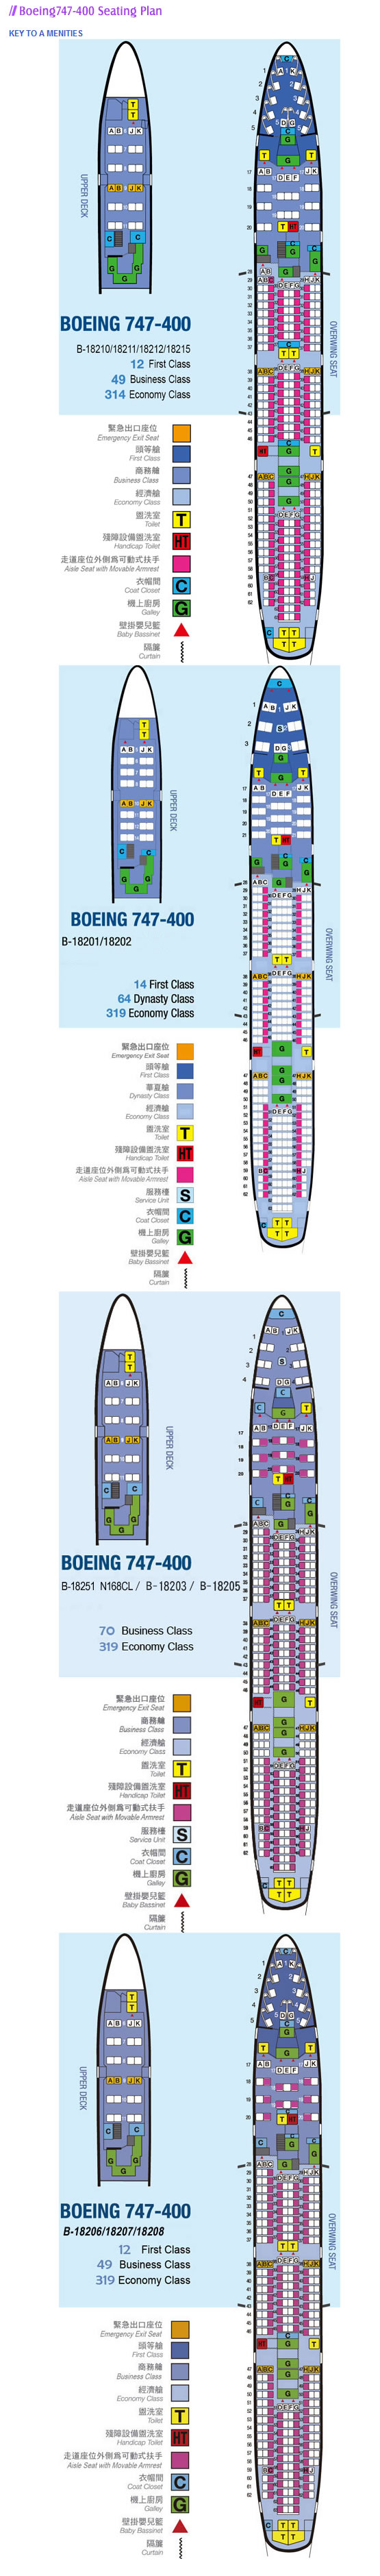 CHINA AIRLINES BOEING 747-400 AIRCRAFT SEATING CHART